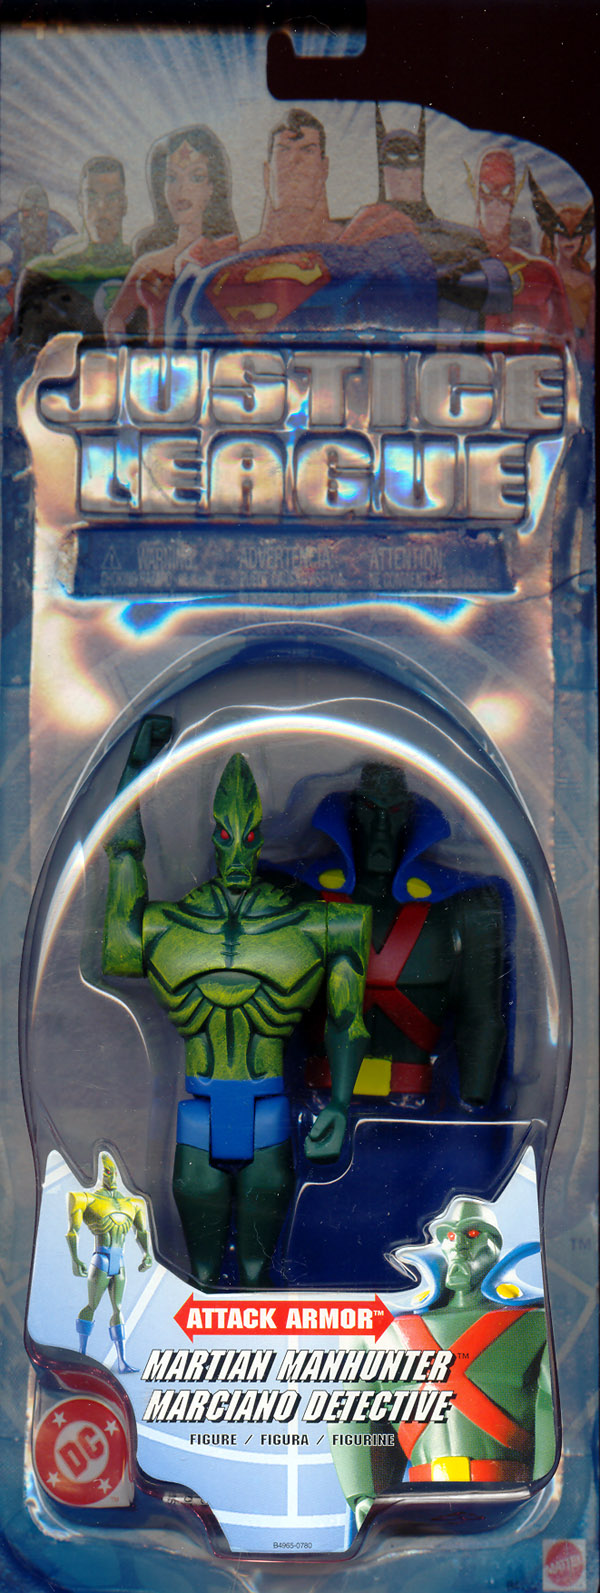 Martian Manhunter (Justice League Attack Armor)